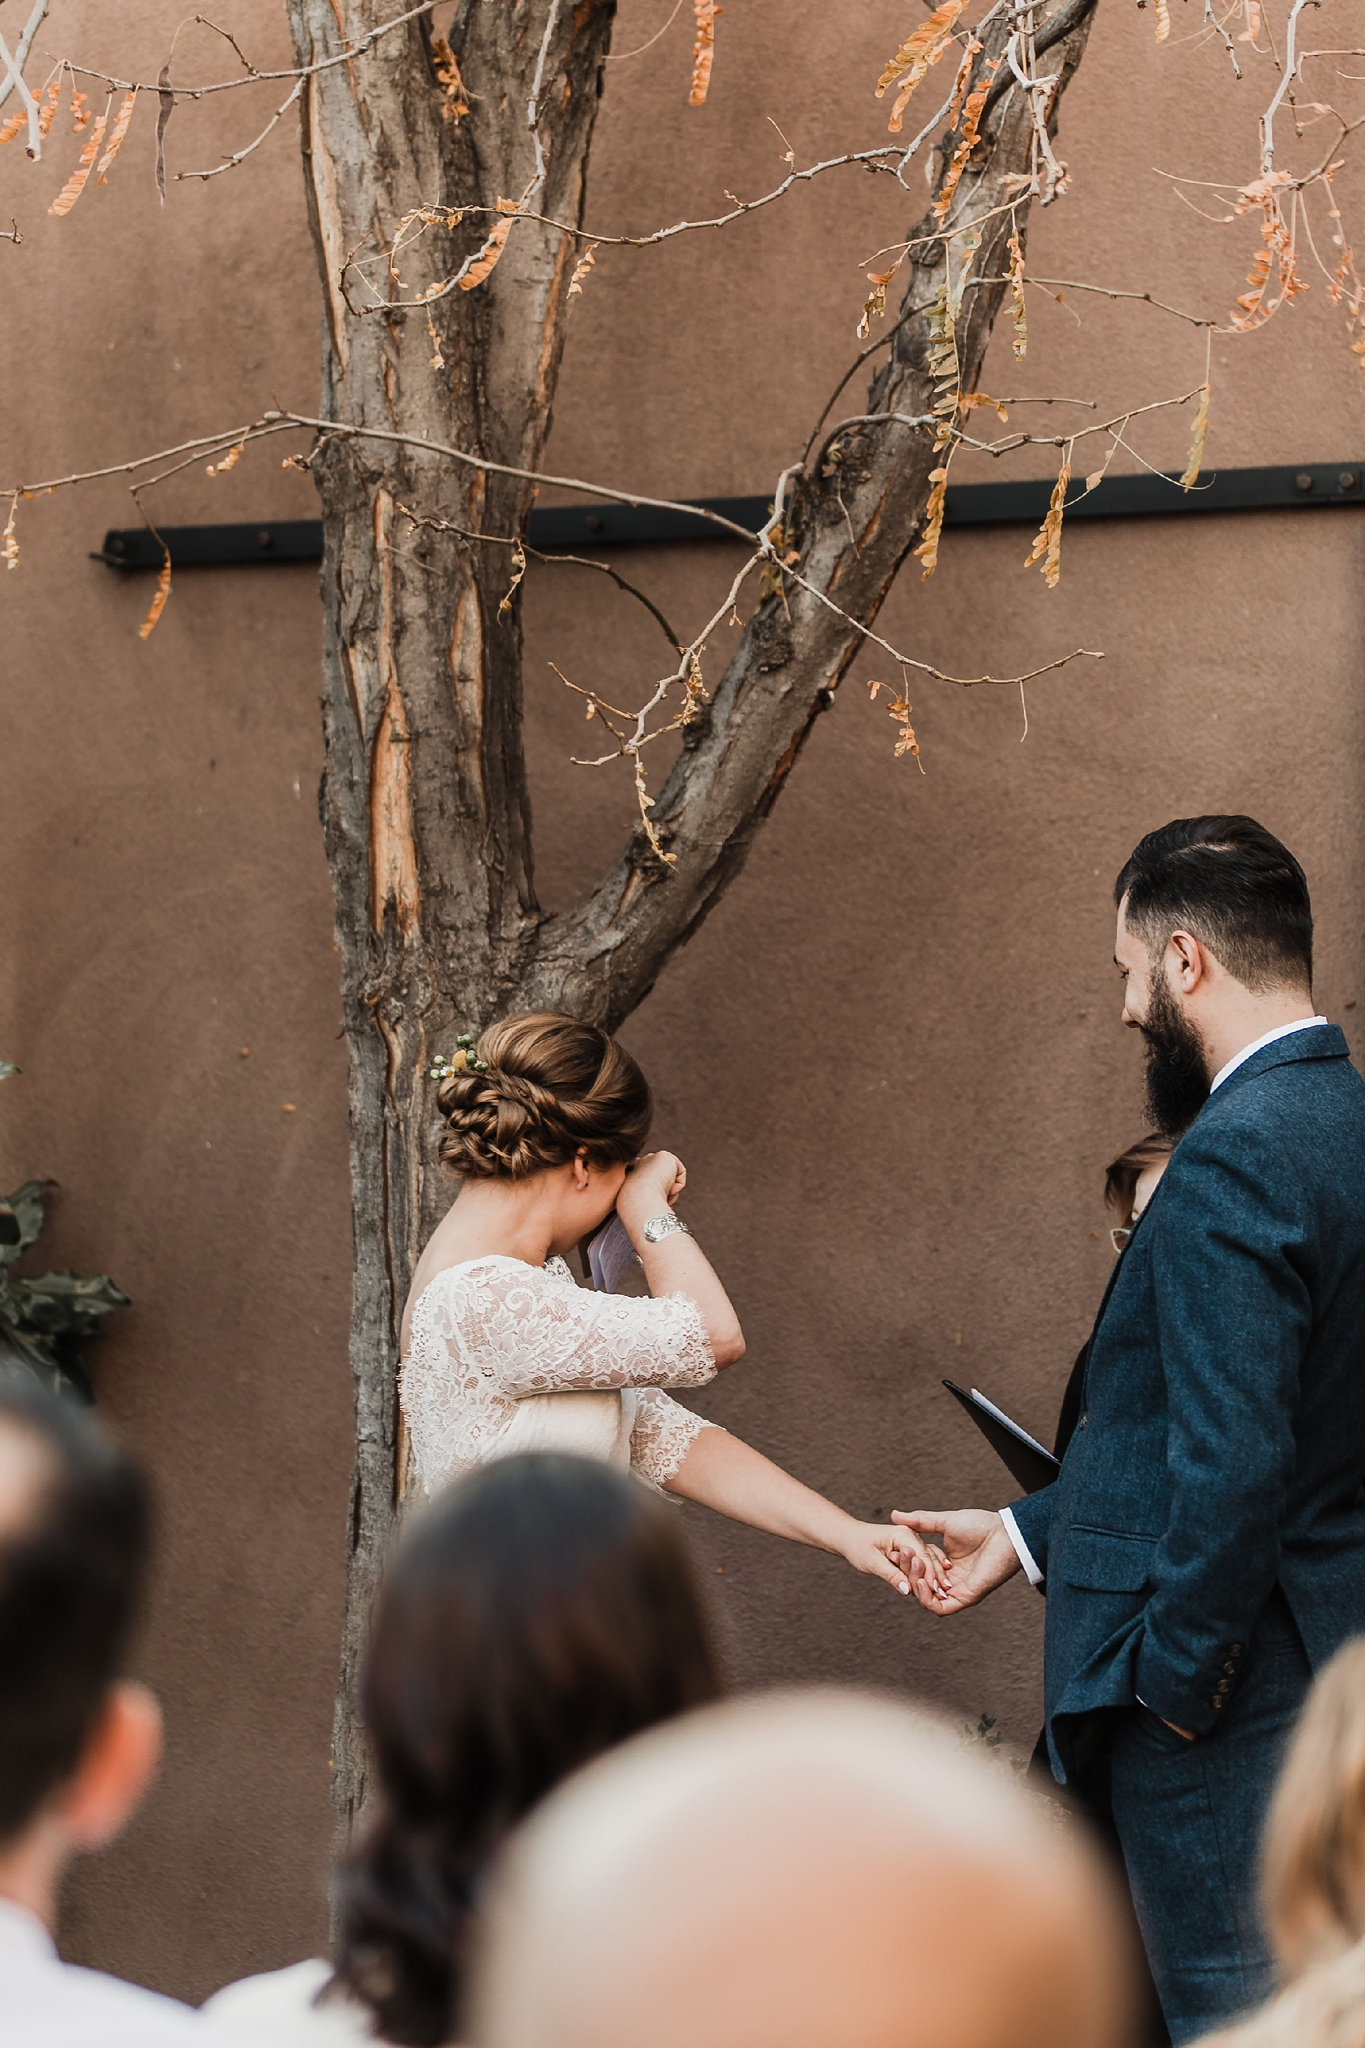 Alicia+lucia+photography+-+albuquerque+wedding+photographer+-+santa+fe+wedding+photography+-+new+mexico+wedding+photographer+-+new+mexico+wedding+-+wedding+vows+-+writing+your+own+vows+-+wedding+inspo_0022.jpg